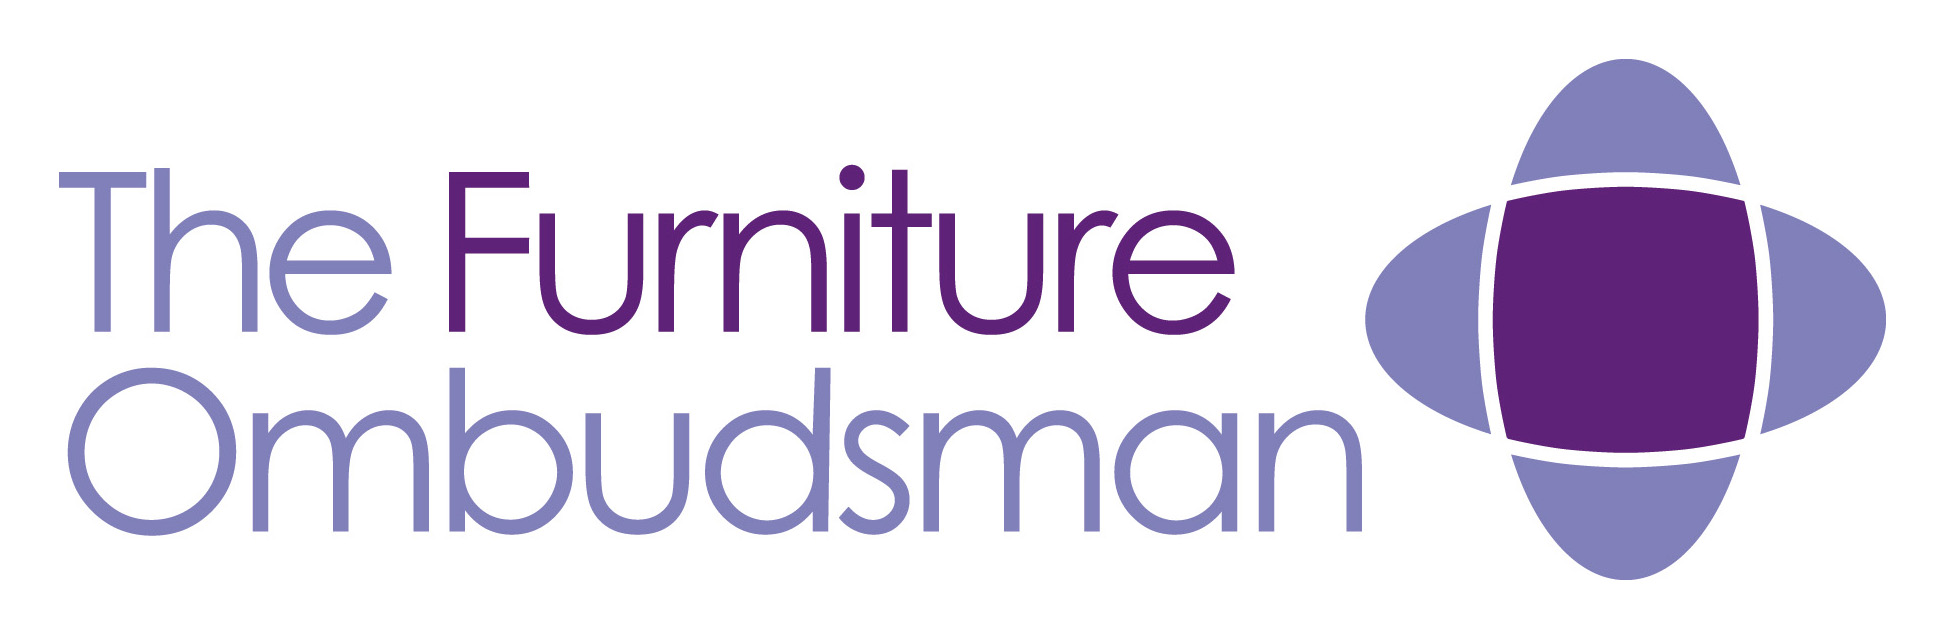 the furniture ombudsman launches new training events in